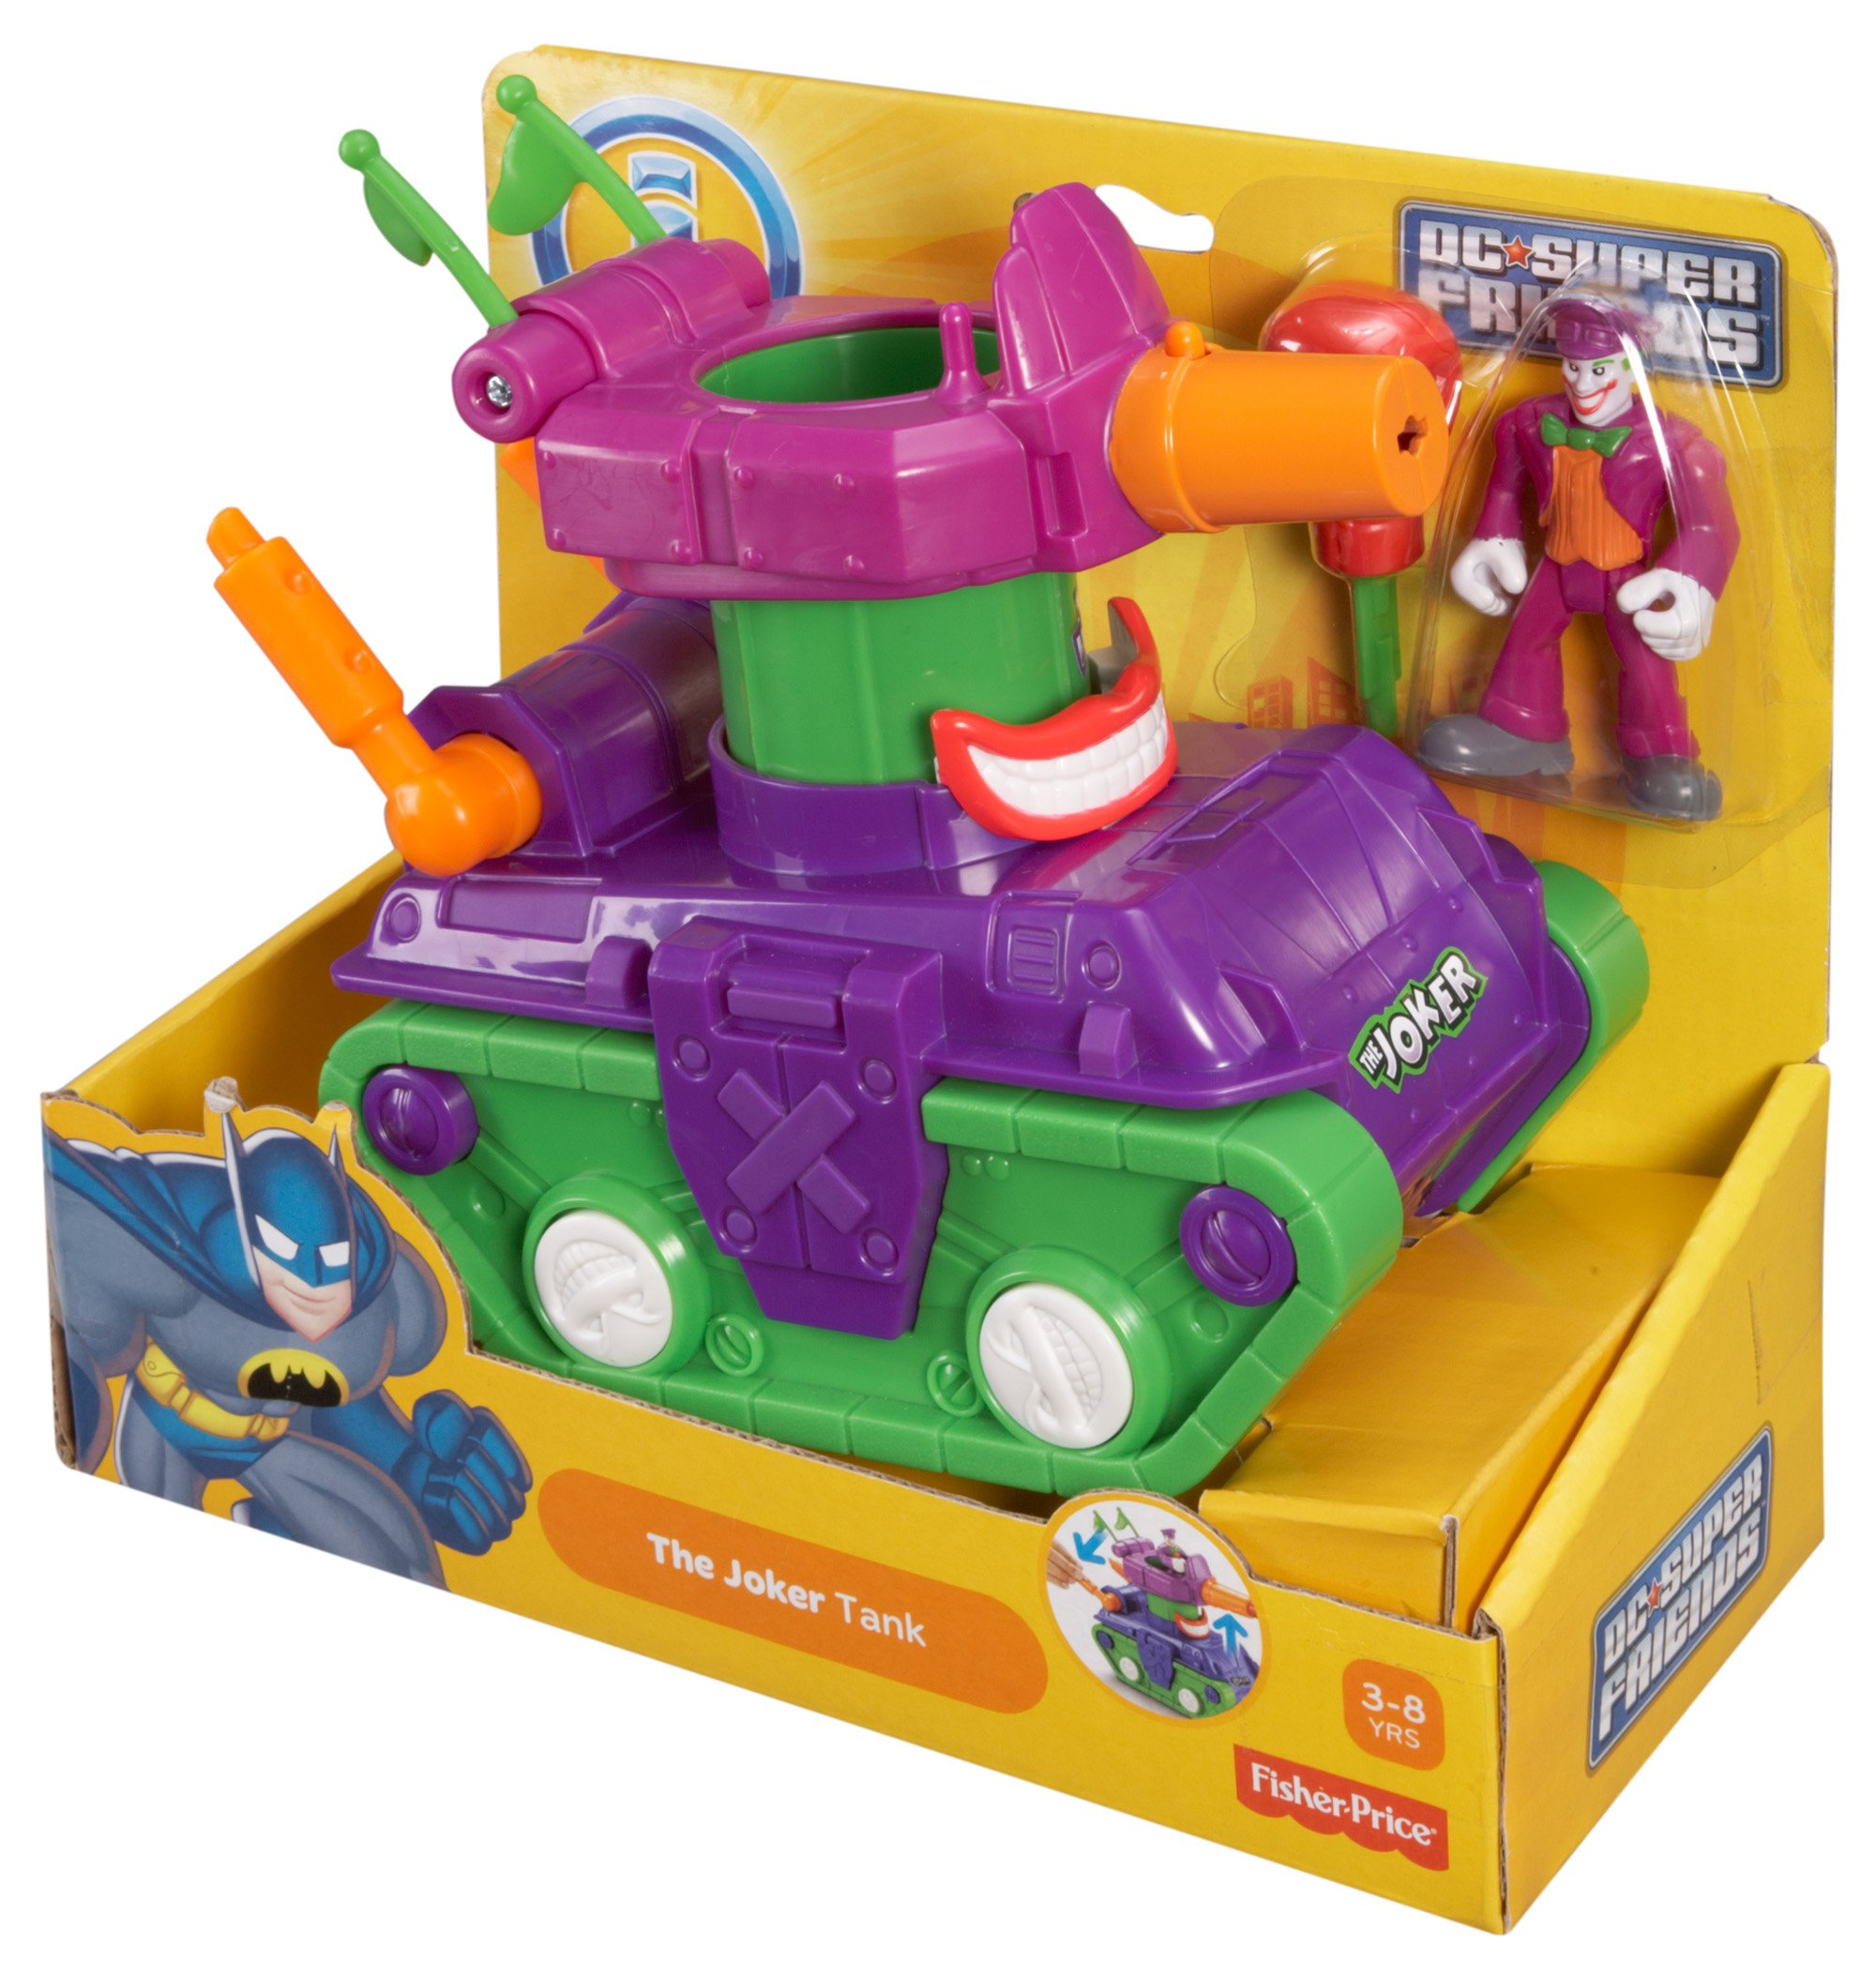 Fisher-Price Imaginext DC Super Friends, Joker Tank by Fisher-Price (Image #8)